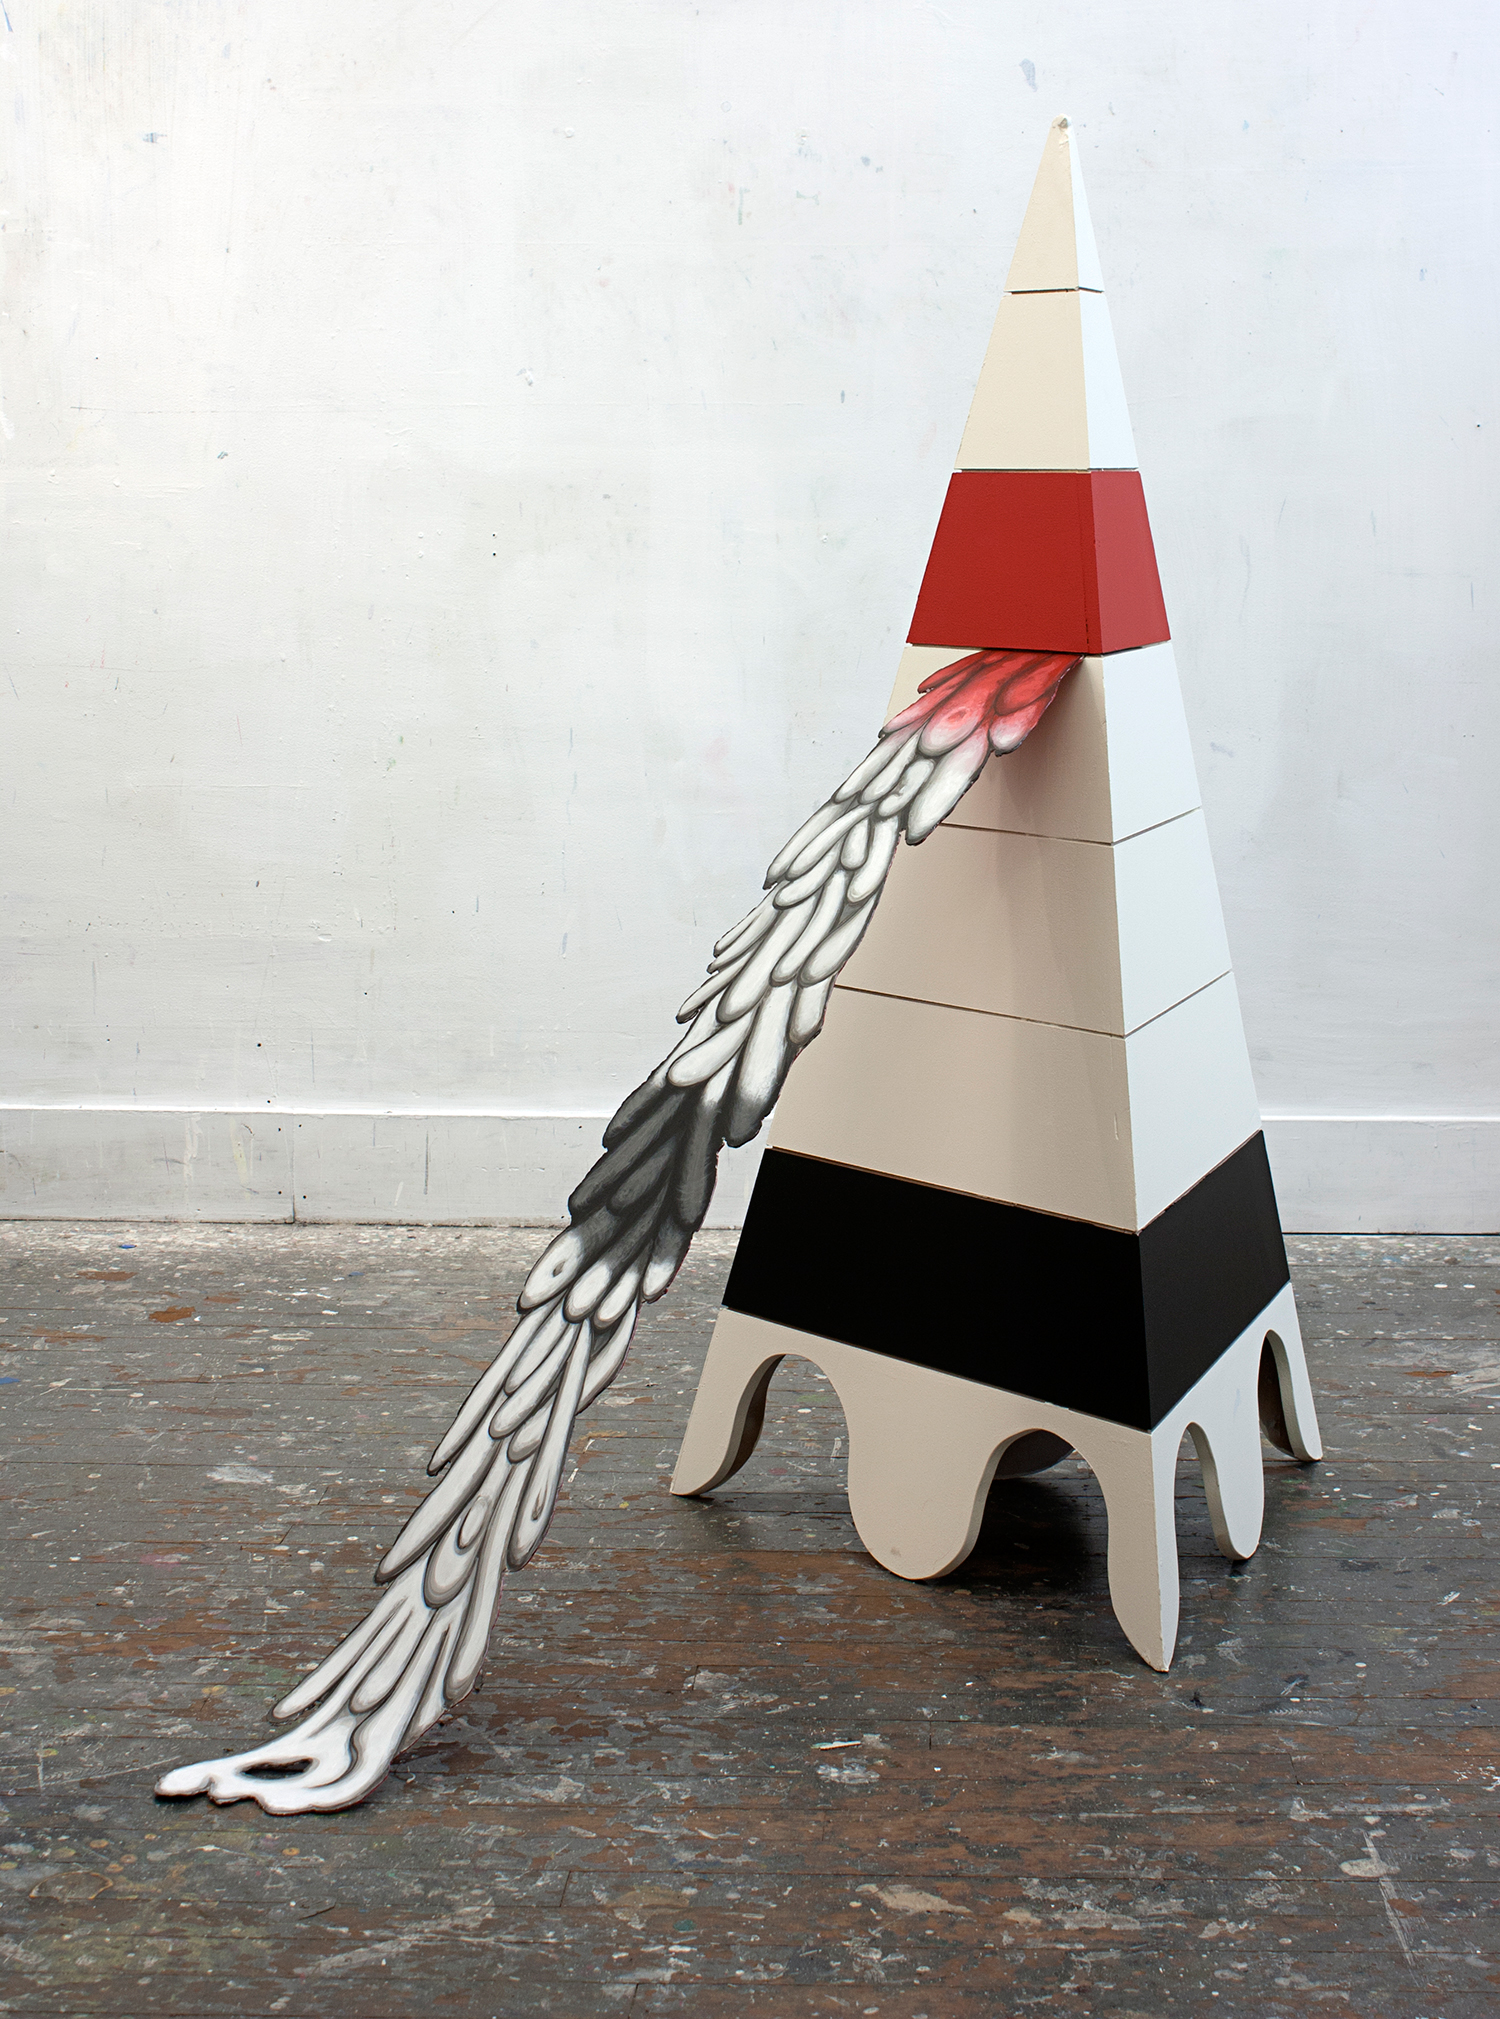 Mars Object , 2015  acrylic on wood and steel  24 x 48 x 48 inches